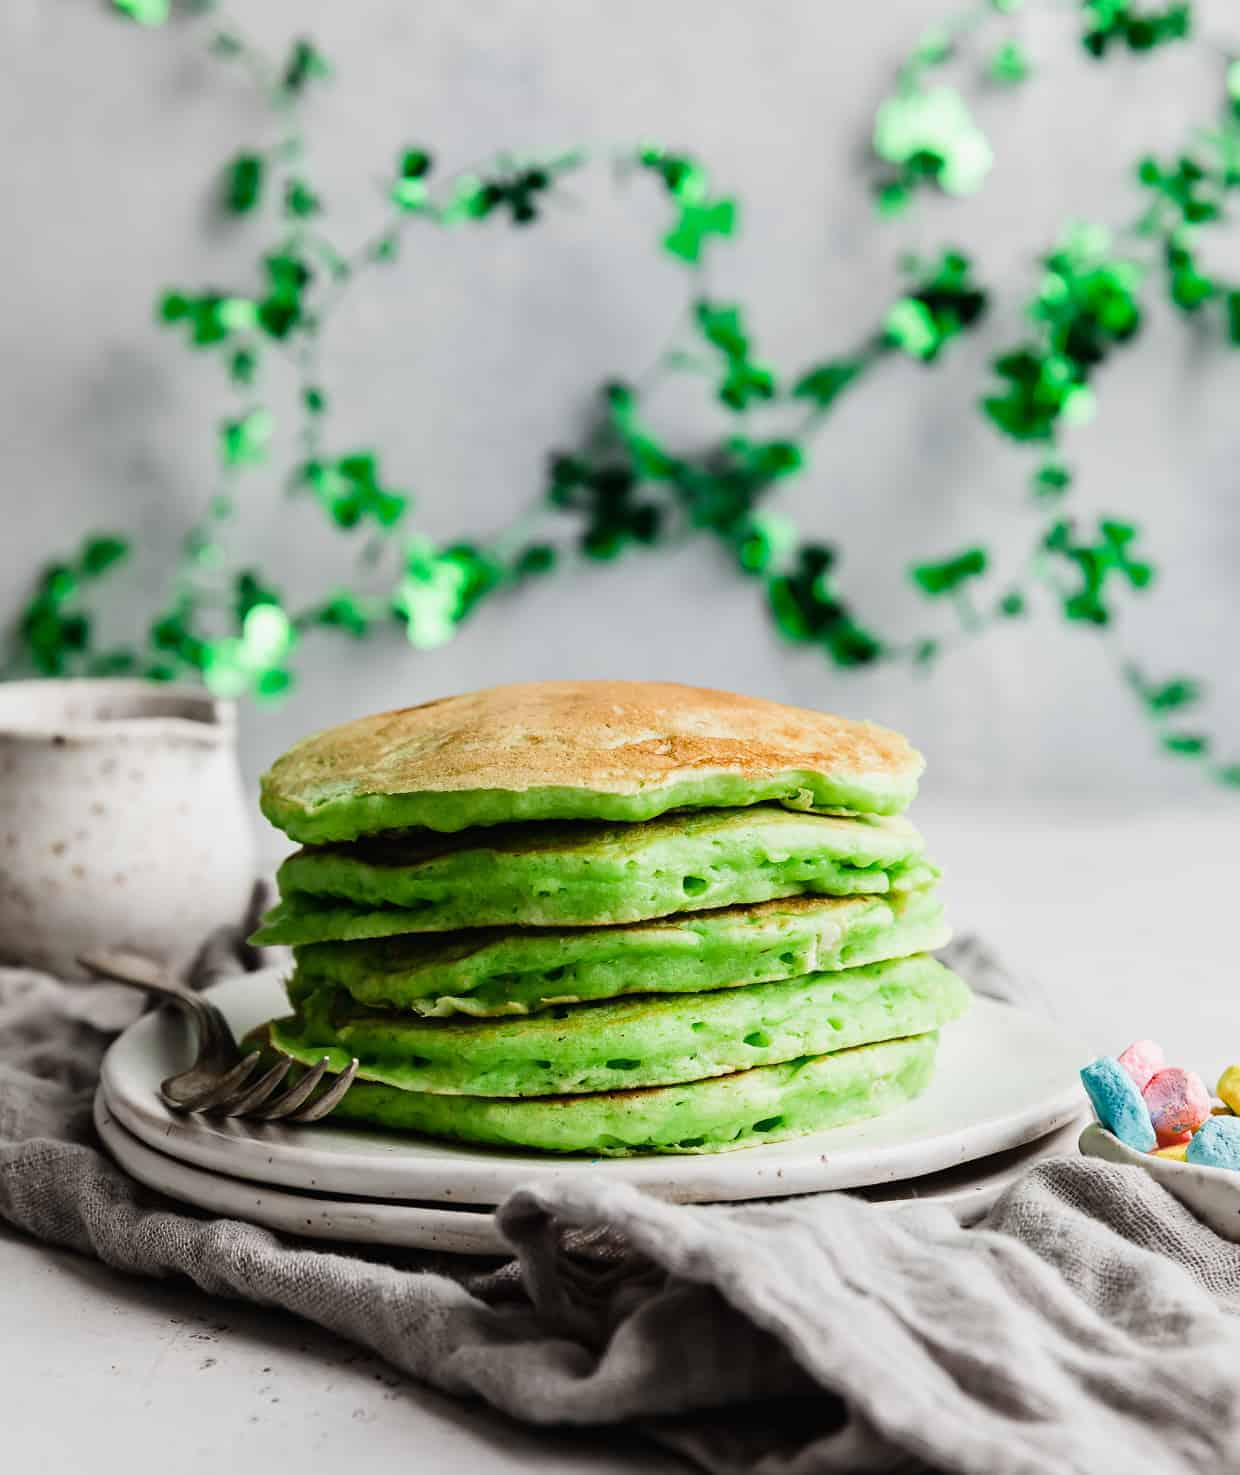 A stack of fluffy green pancakes on a white plate with green St. Patrick's day decor in the background.